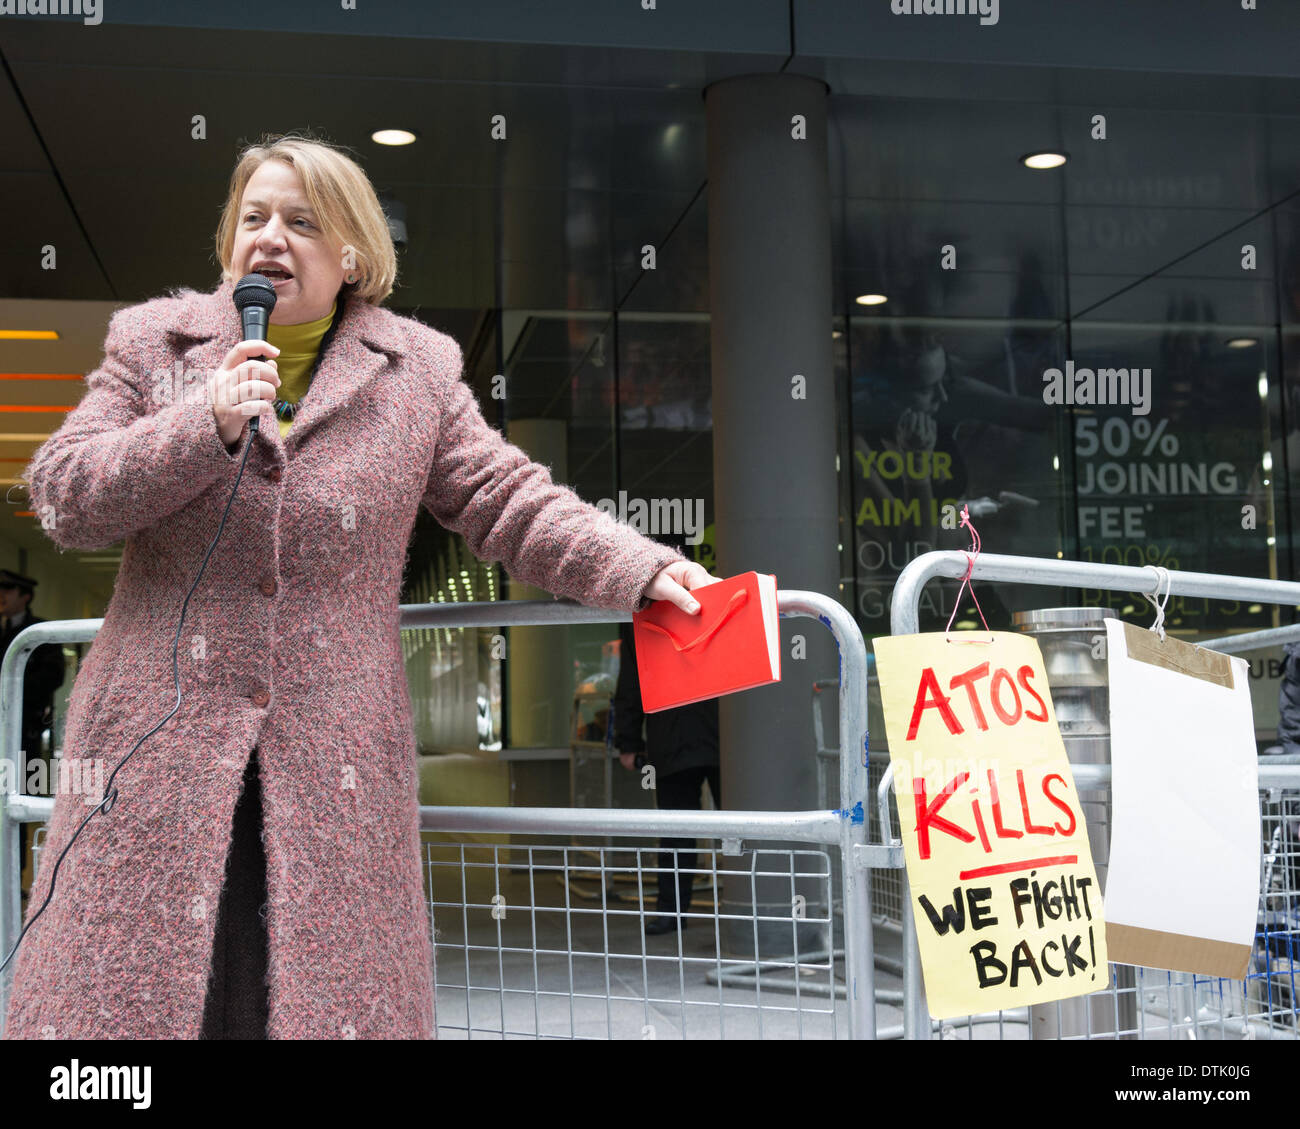 ATOS headquarters, London, UK, 19th February, 2014. Leader of the Green Party Natalie Bennett speaks outside ATOS head office in London to protest the company's implementation of Work Capability Assessments. Protesters say that ATOS workers with little or no medical knowledge make poor decisions which lead to people losing their sickness benefits, and demand that a qualified medical doctor, ideally the GP who regularly sees and treats the sick or disabled person in question, is the only person able to decide if an individual is fit for work. Credit:  Patricia Phillips/Alamy Live News - Stock Image